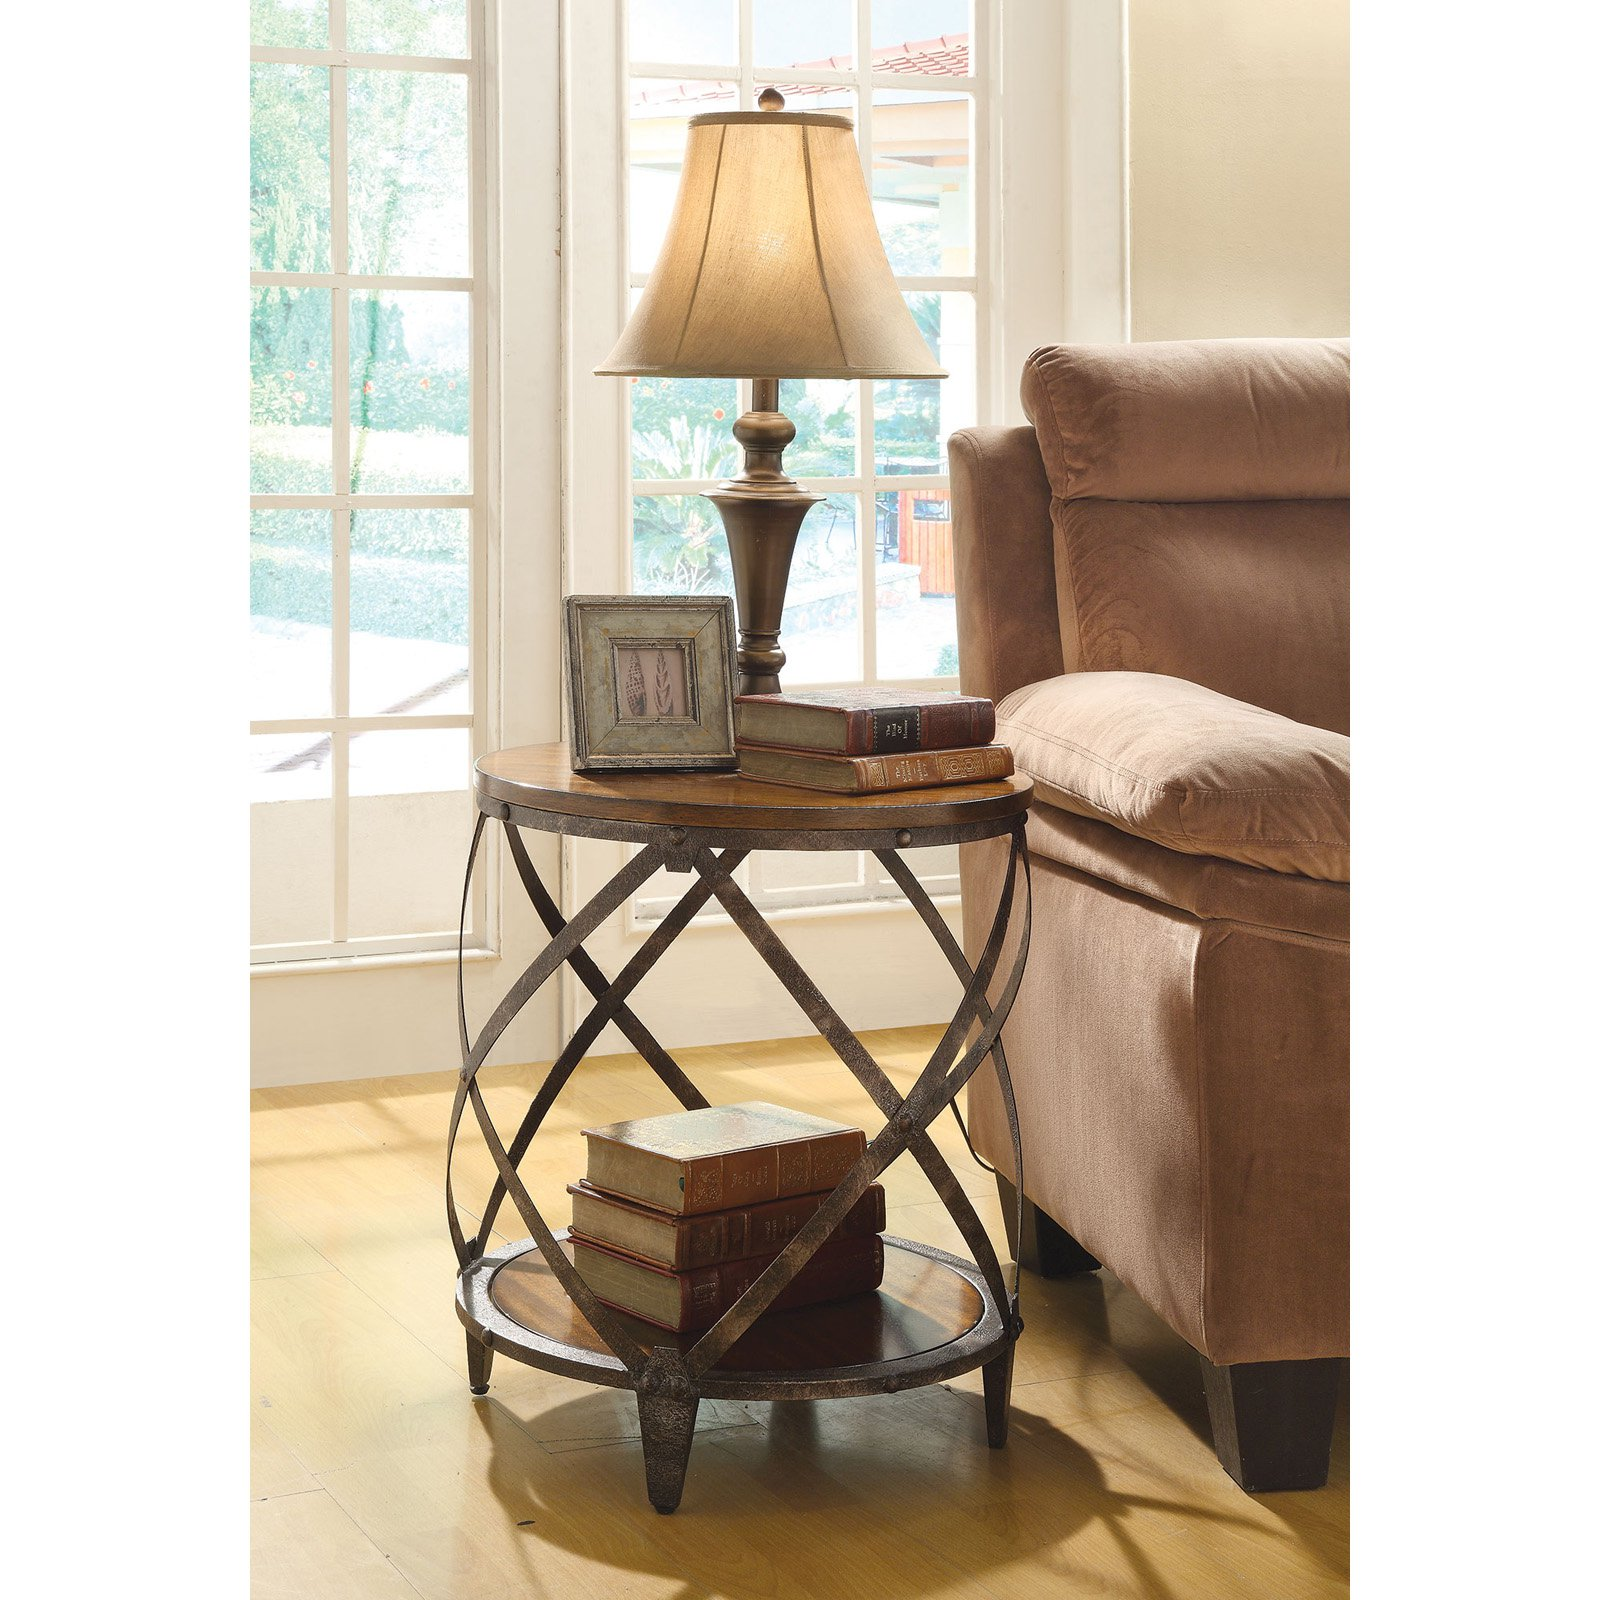 coaster furniture brown spiral metal frame accent table master modern bedside tables wooden tray farmhouse style dining chairs coffee and lamp mirage mirrored antique looking end